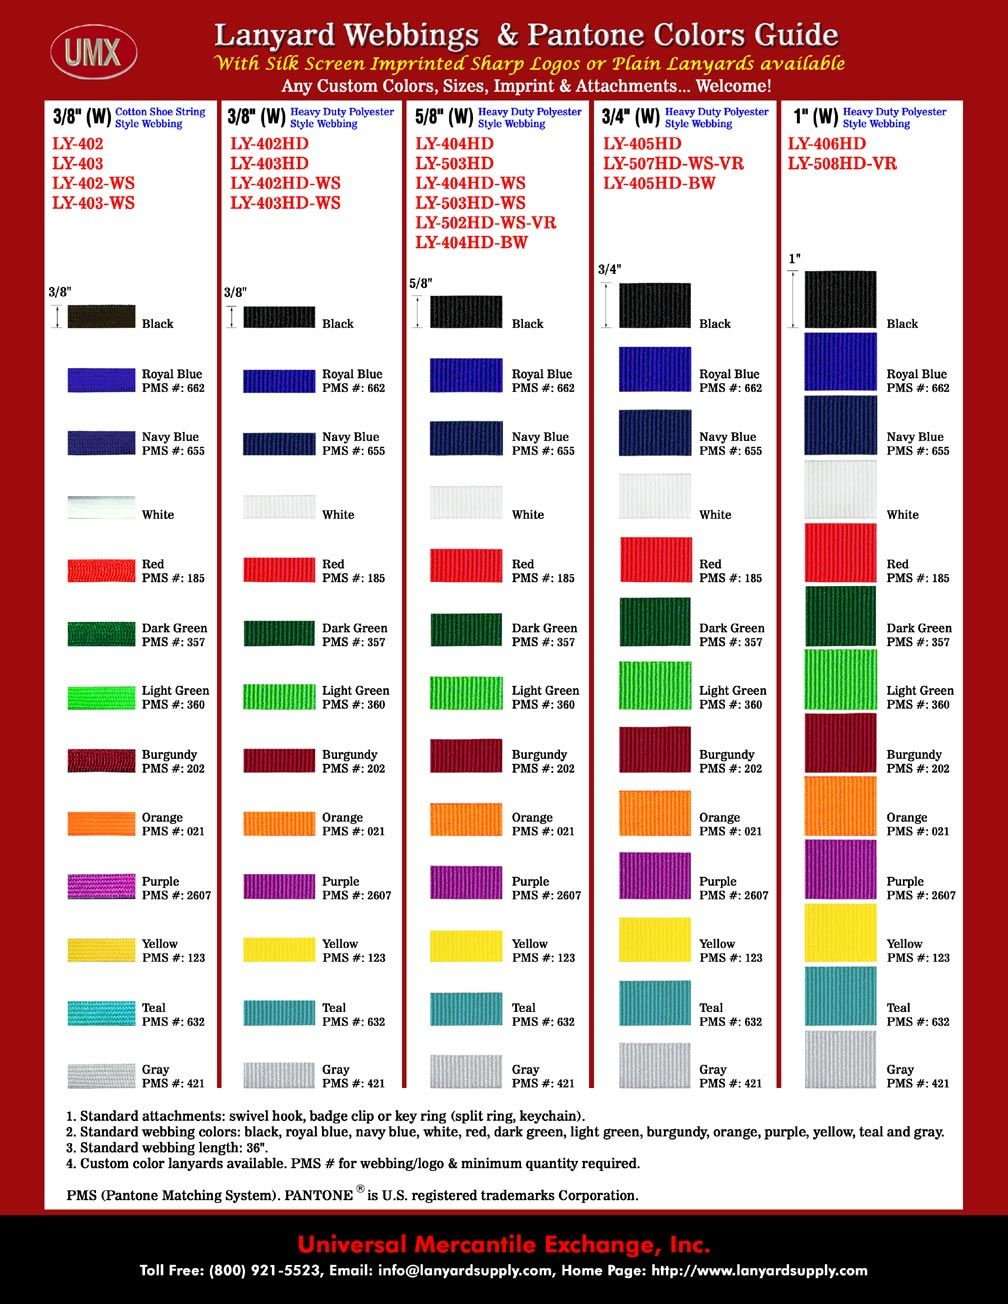 Pantone pms colors are pantone and pms colors the same things lanyard webbings pms color pantone matching system color rh pinterest com cubs pms colors pantone pantone pms color chart convert nvjuhfo Images